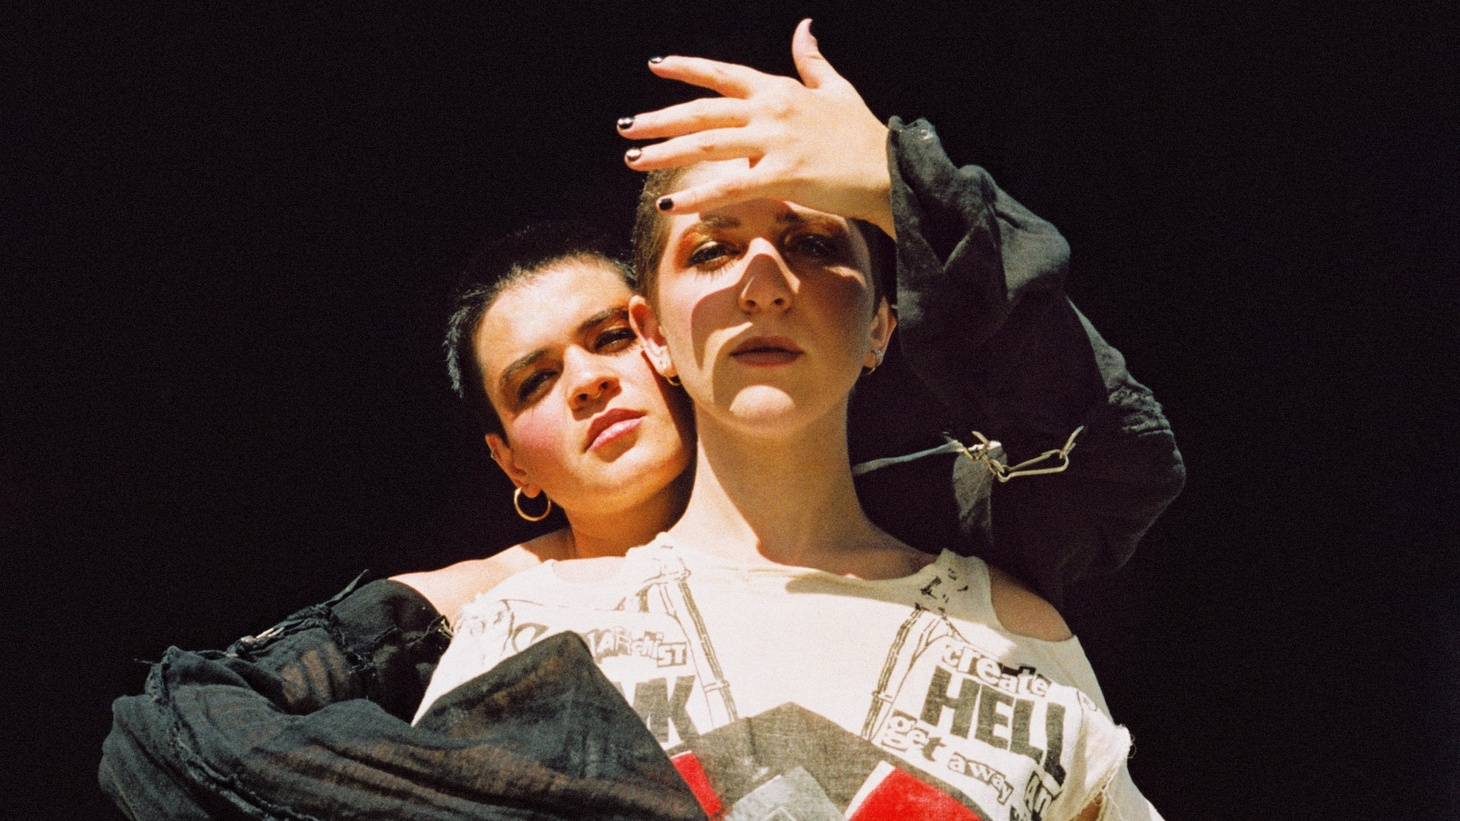 """Taking a leap of faith into the unknown is what prompted the Brooklyn duo Overcoats to base their song on the tarot card """"The Fool."""" This metaphor ignites the next phase of their career as they commit to fearless honesty in all things."""